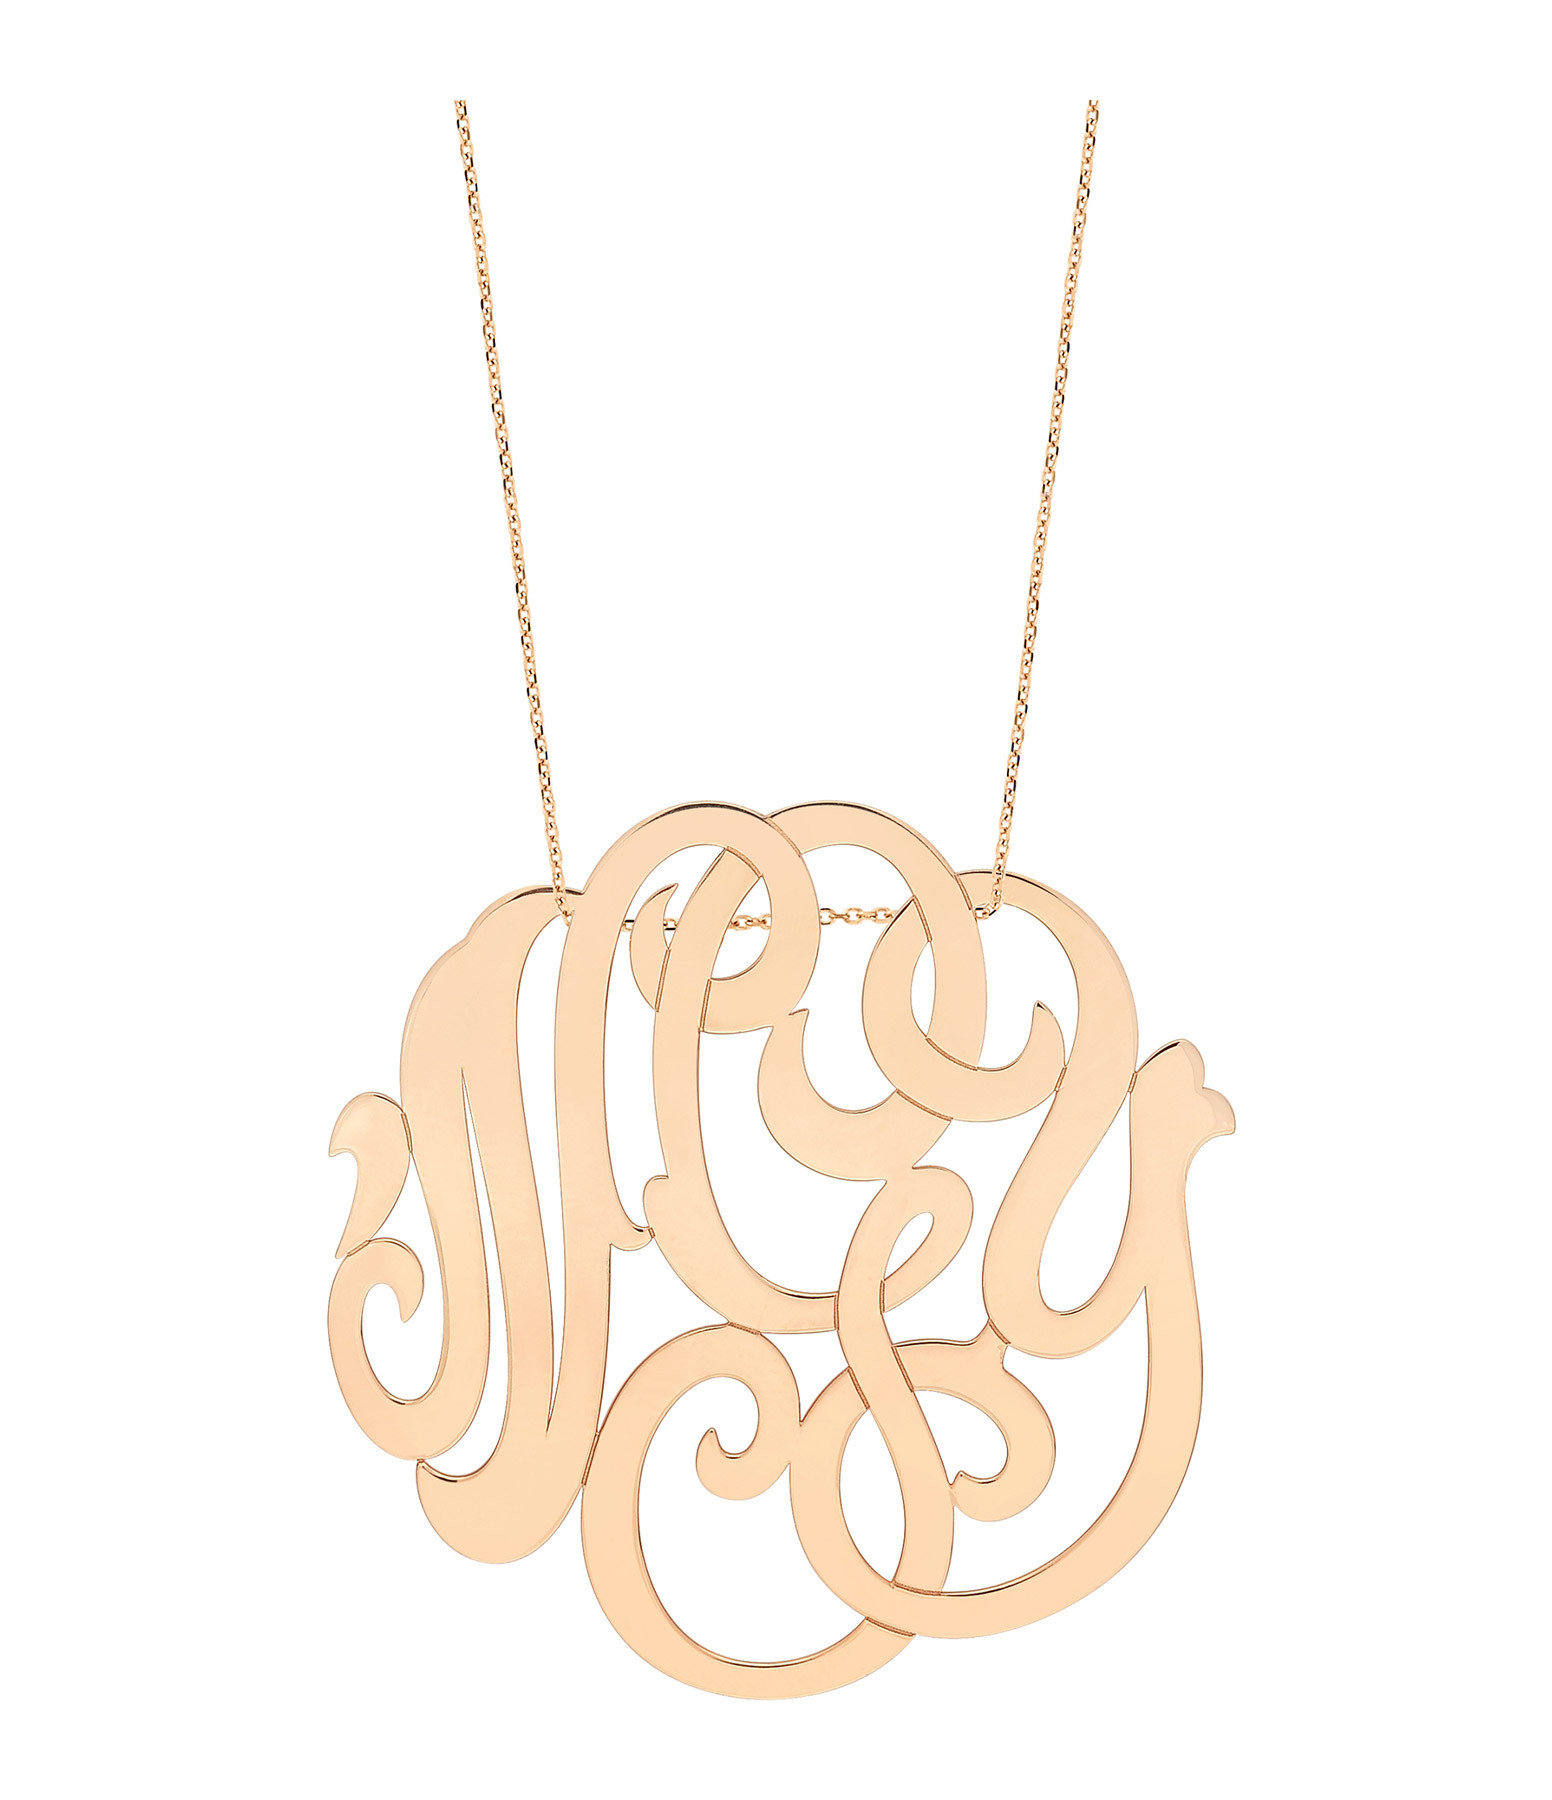 """Collier Jumbo Monogramme """"nGy"""" - GINETTE_NY"""